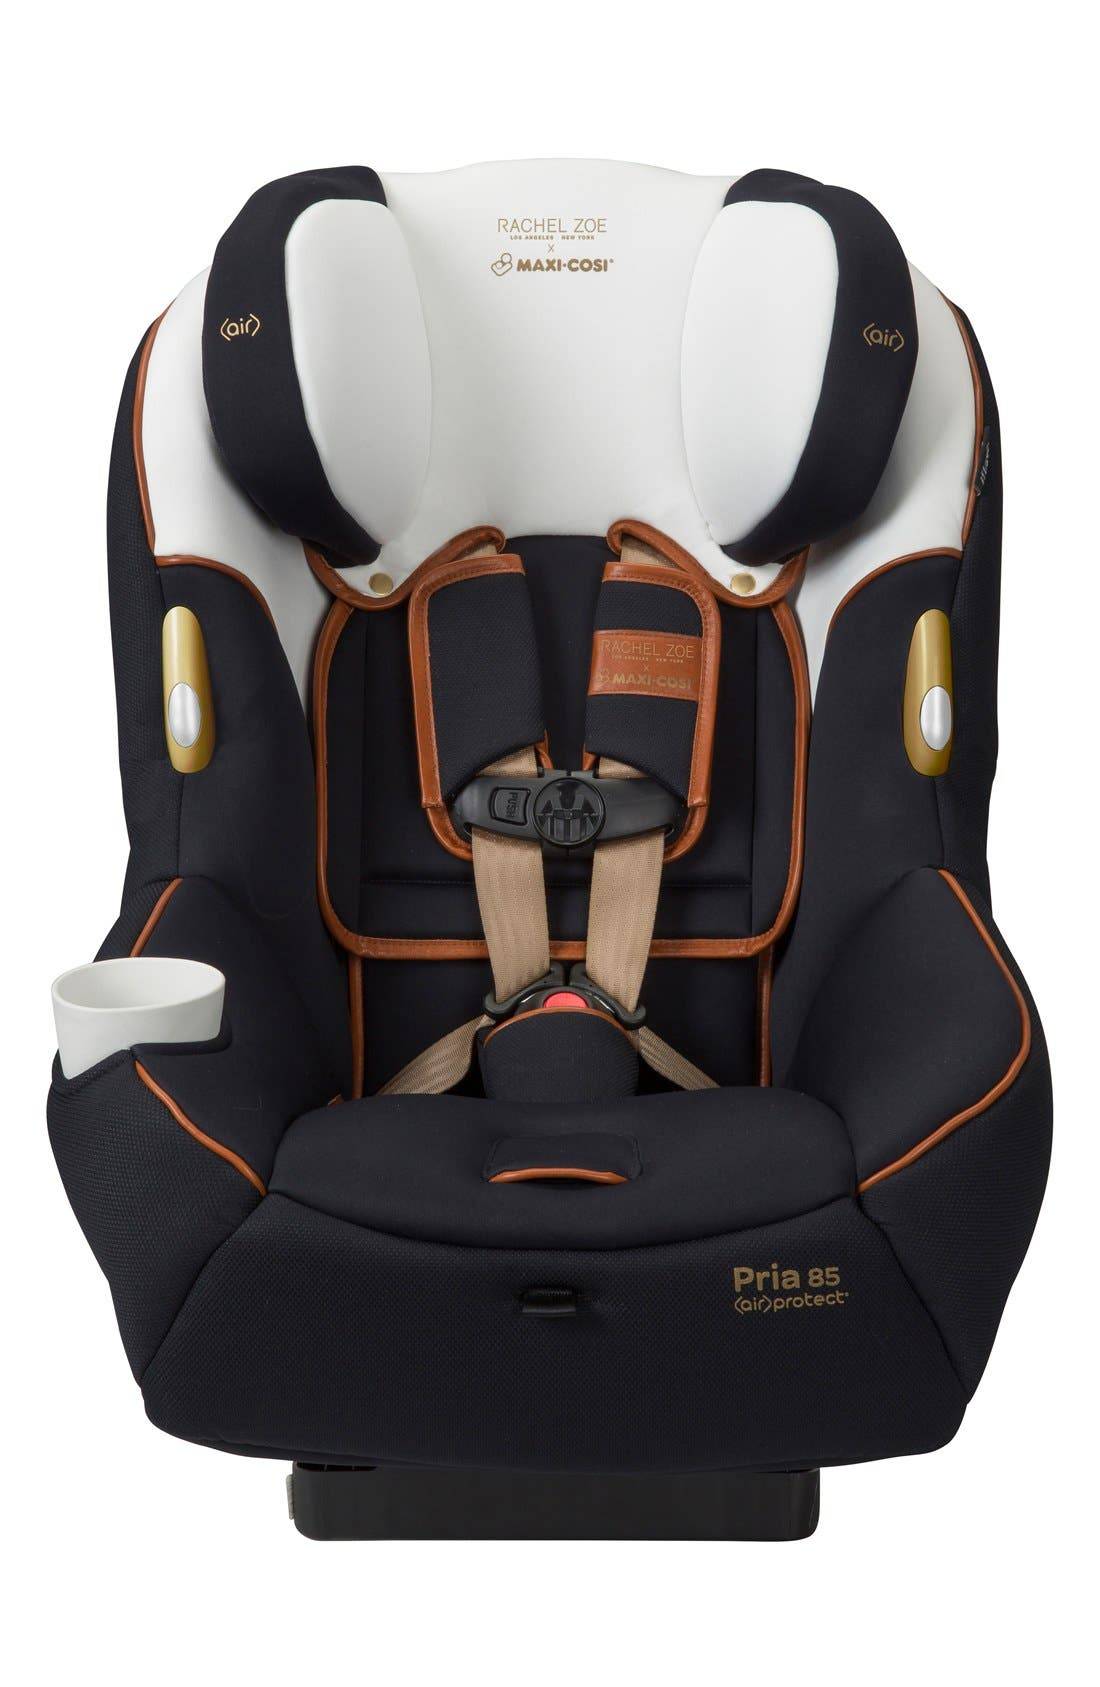 x Rachel Zoe Pria<sup>™</sup> 85 - Special Edition Car Seat,                             Main thumbnail 1, color,                             005